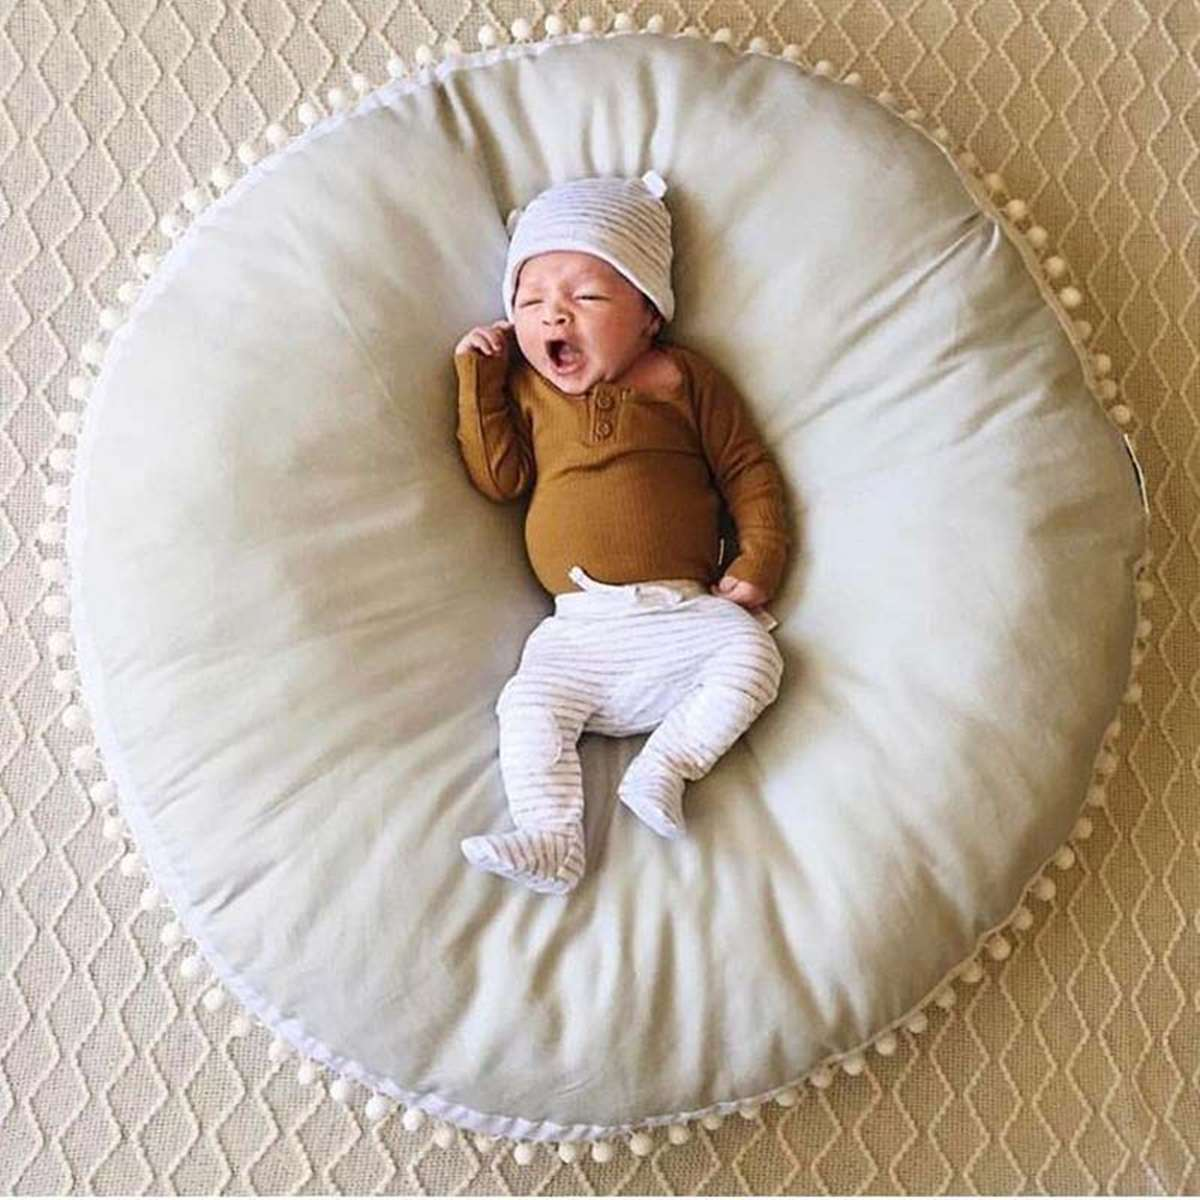 2019 Baby bean bag chair Cotton Round Soft Play Mats Crawling Pad Home Children Kids Room Decor 90*90cm Yellow Grey